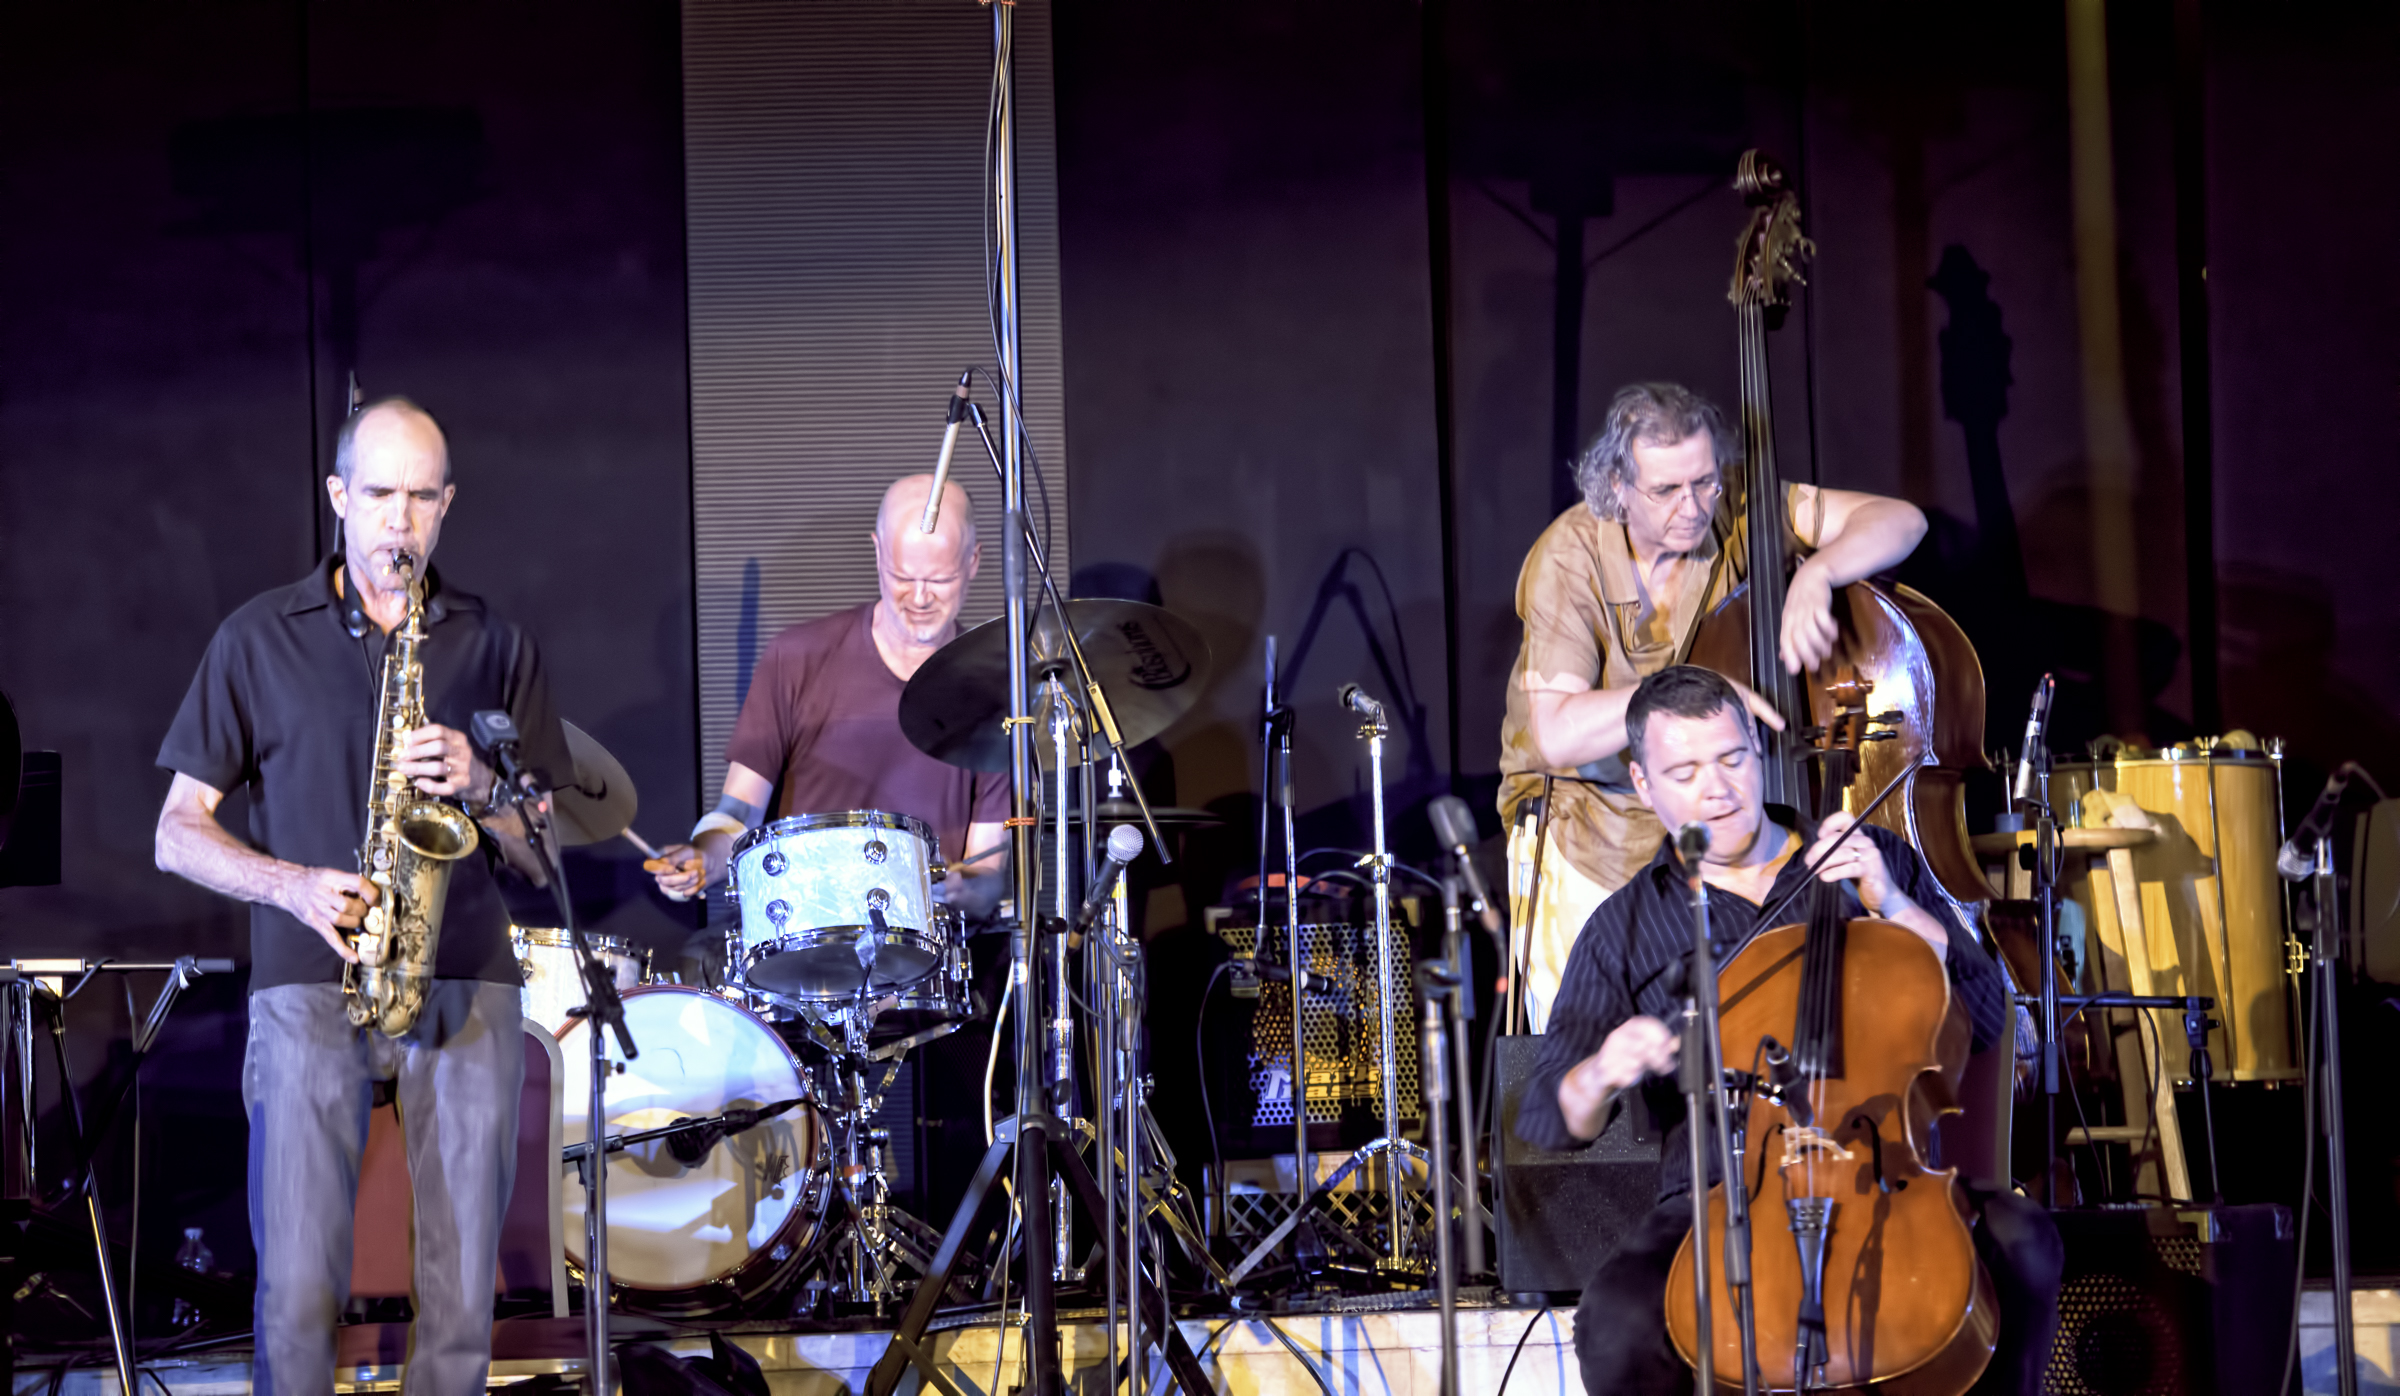 Rob Brown, Whit Dickey, Michael Bisio and Daniel Levin with the Whit Dickey Ensemble Cosmic Breath at the 20th Anniversary Vision Festival 2015